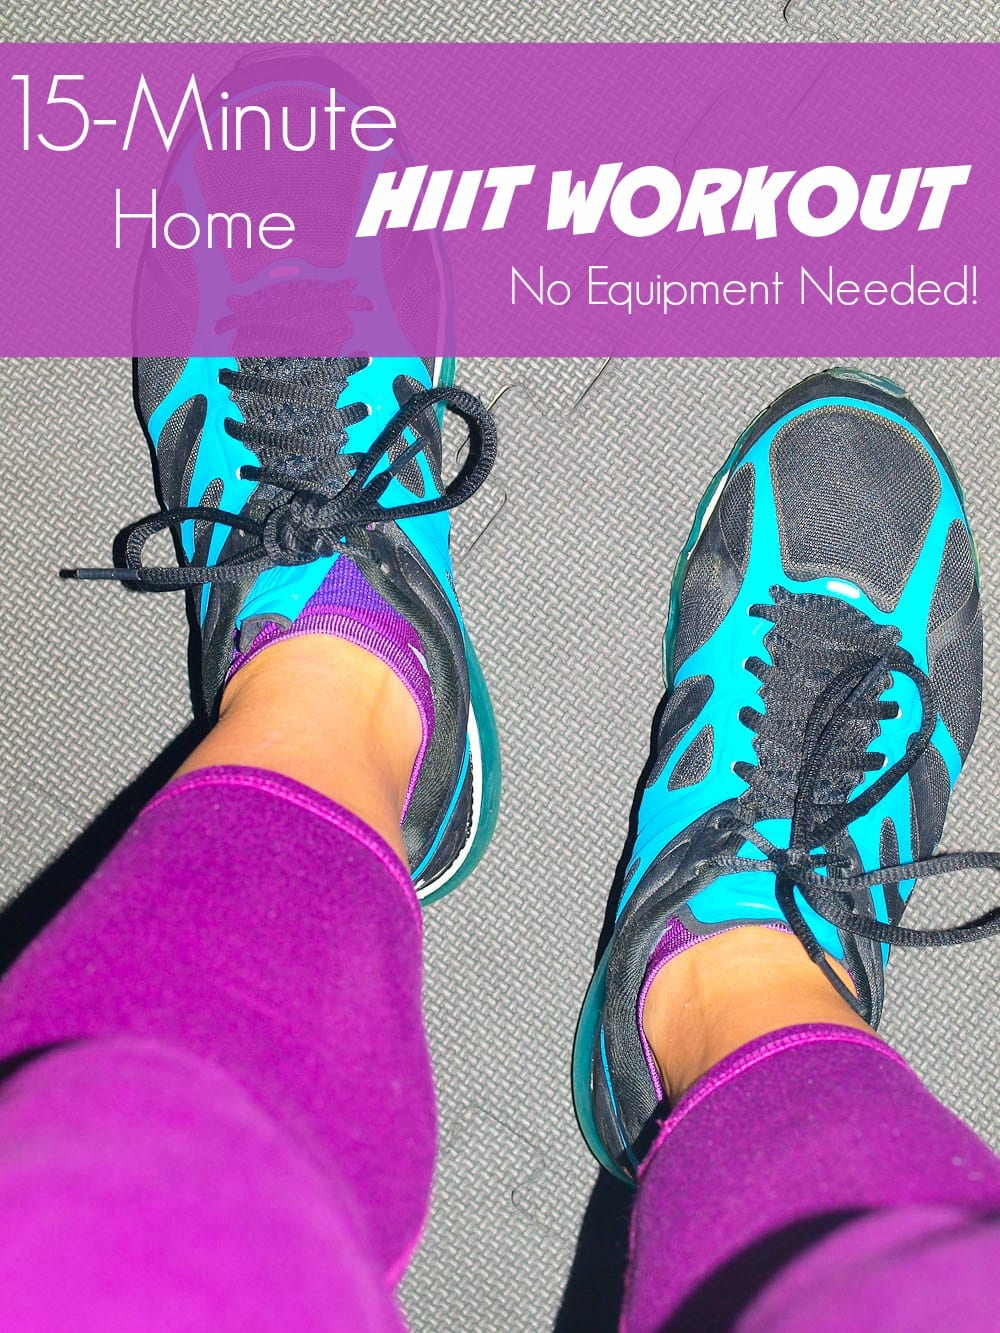 15 Minute Home HIIT workout. No equipment required! This is the workout I'